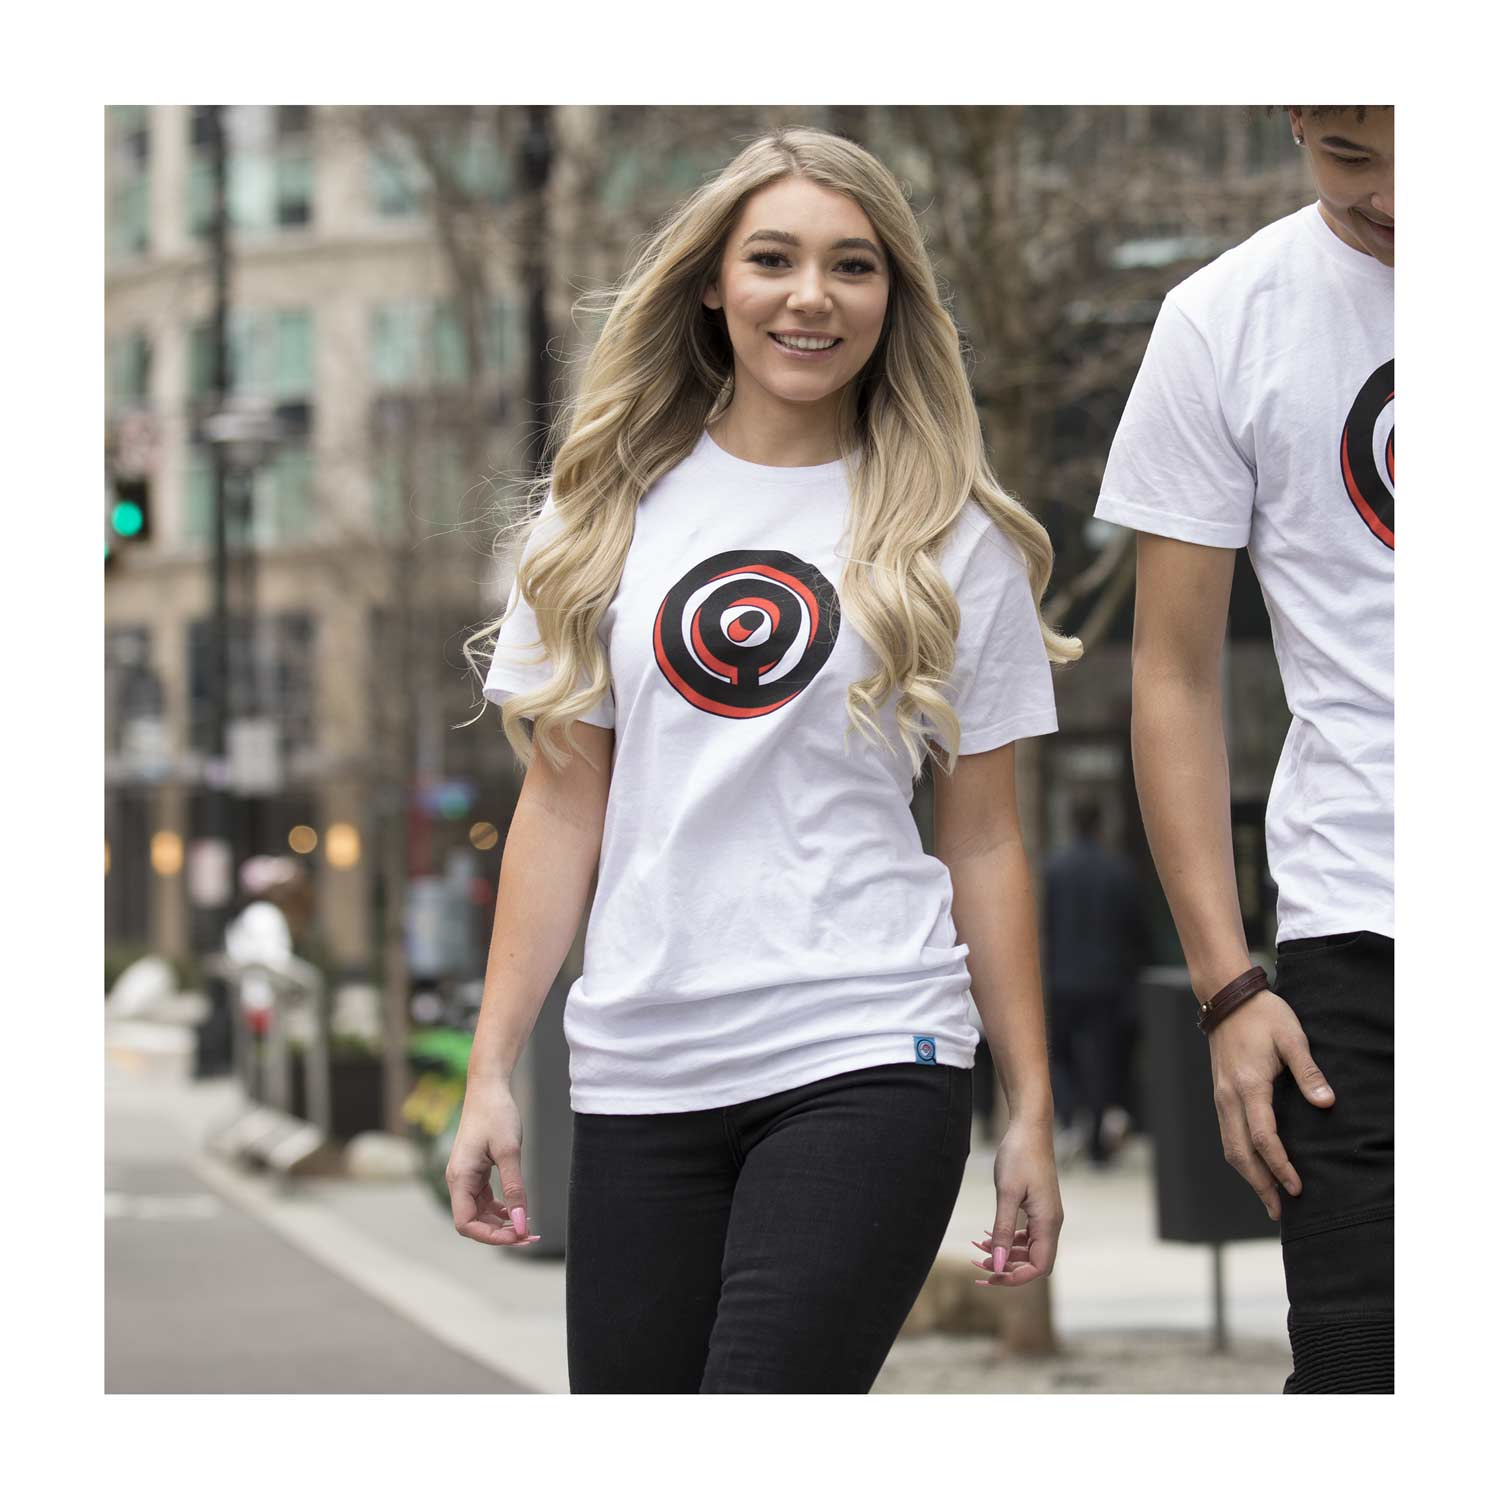 c8d76167 ... Image for POKÉMON Detective Pikachu Unown O Relaxed Fit Crew Neck T- Shirt - Adult.  _5_3074457345618259663_3074457345618262057_3074457345618268656